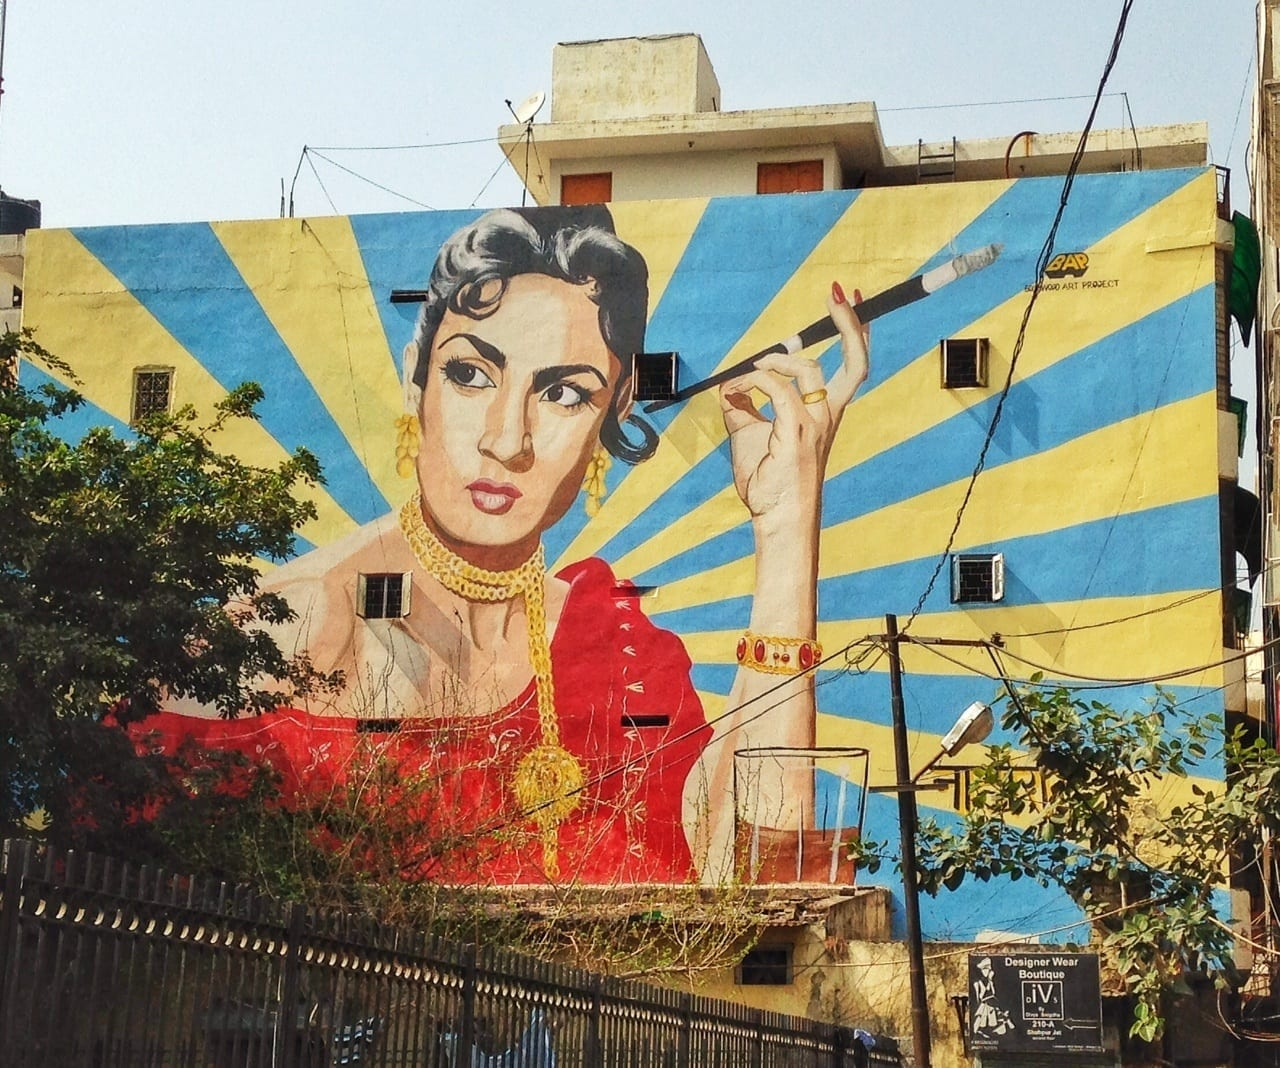 A mural in Delhi featuring a woman in a red dress holding a long cigarette holder.